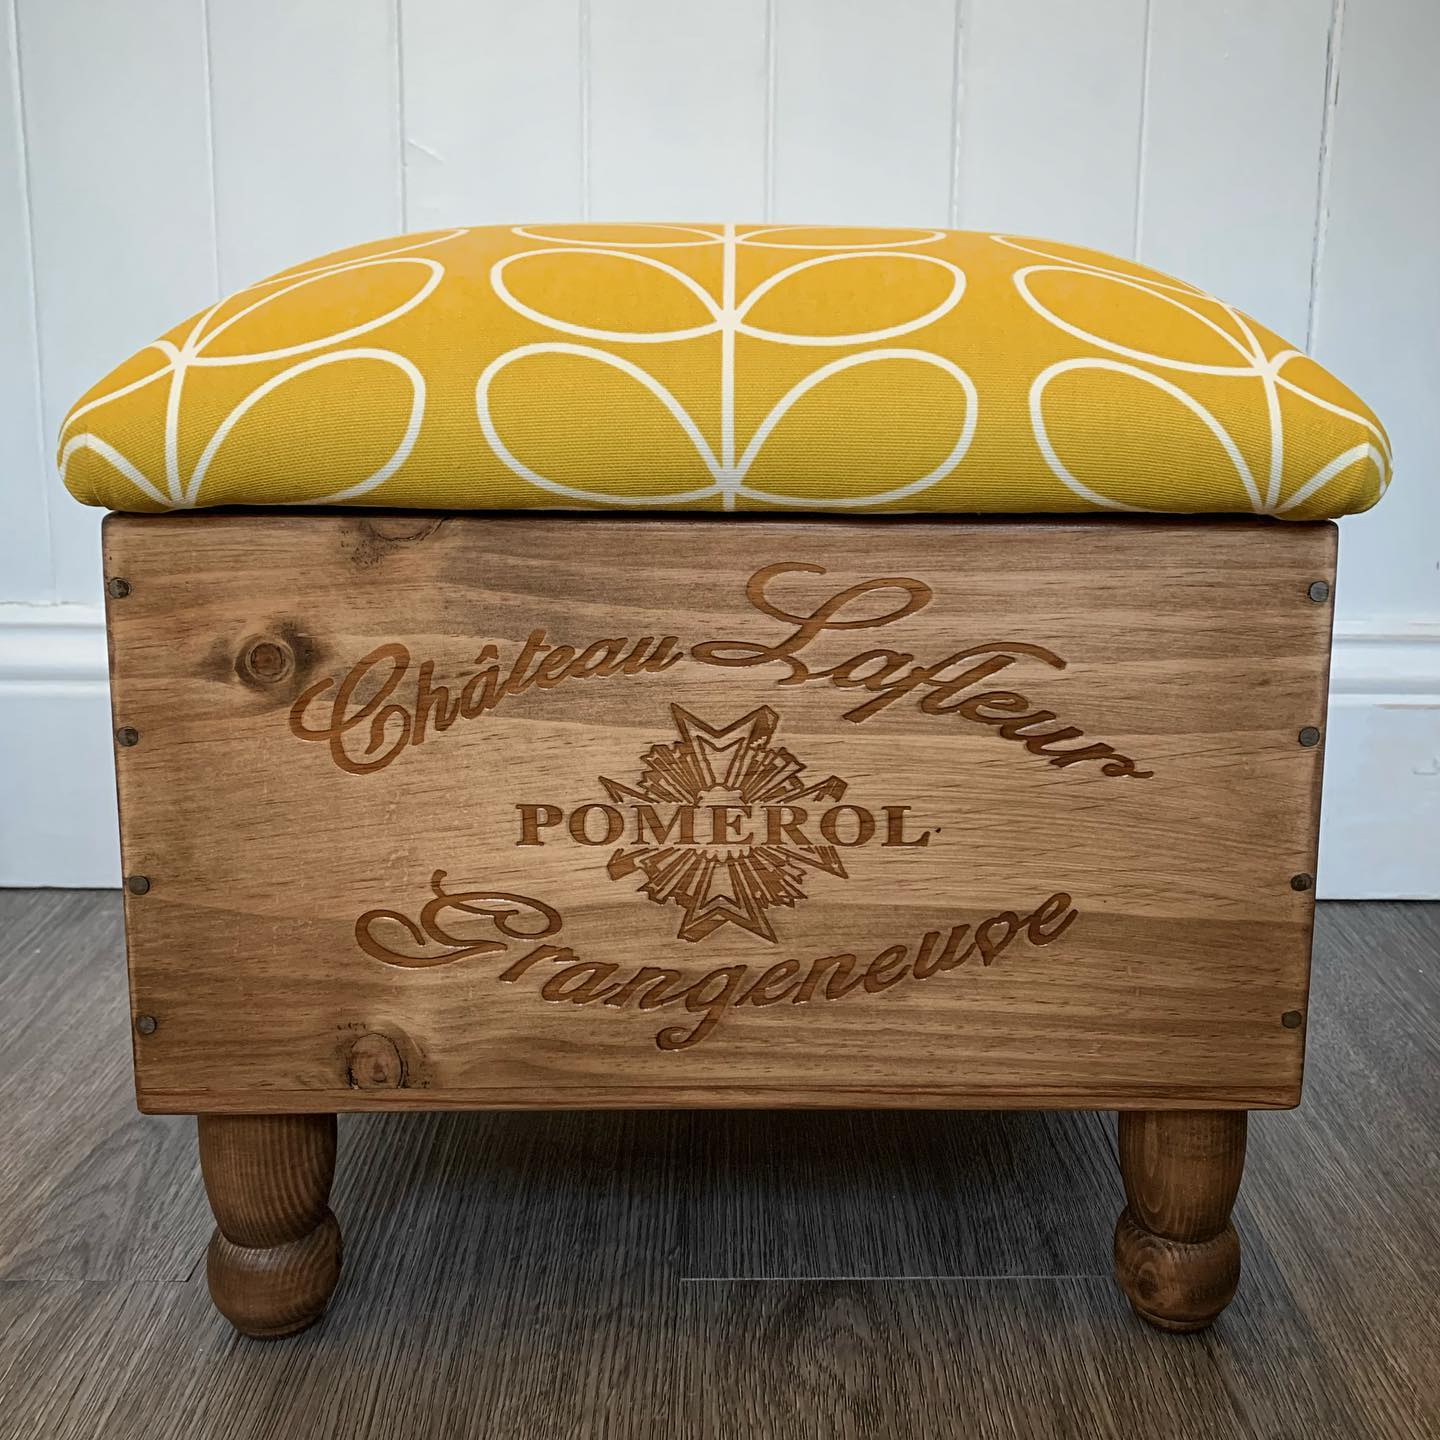 Working on some lovely bespoke ottomans today! This ochre yellow print is a perfect pick me up to brighten this grey day!